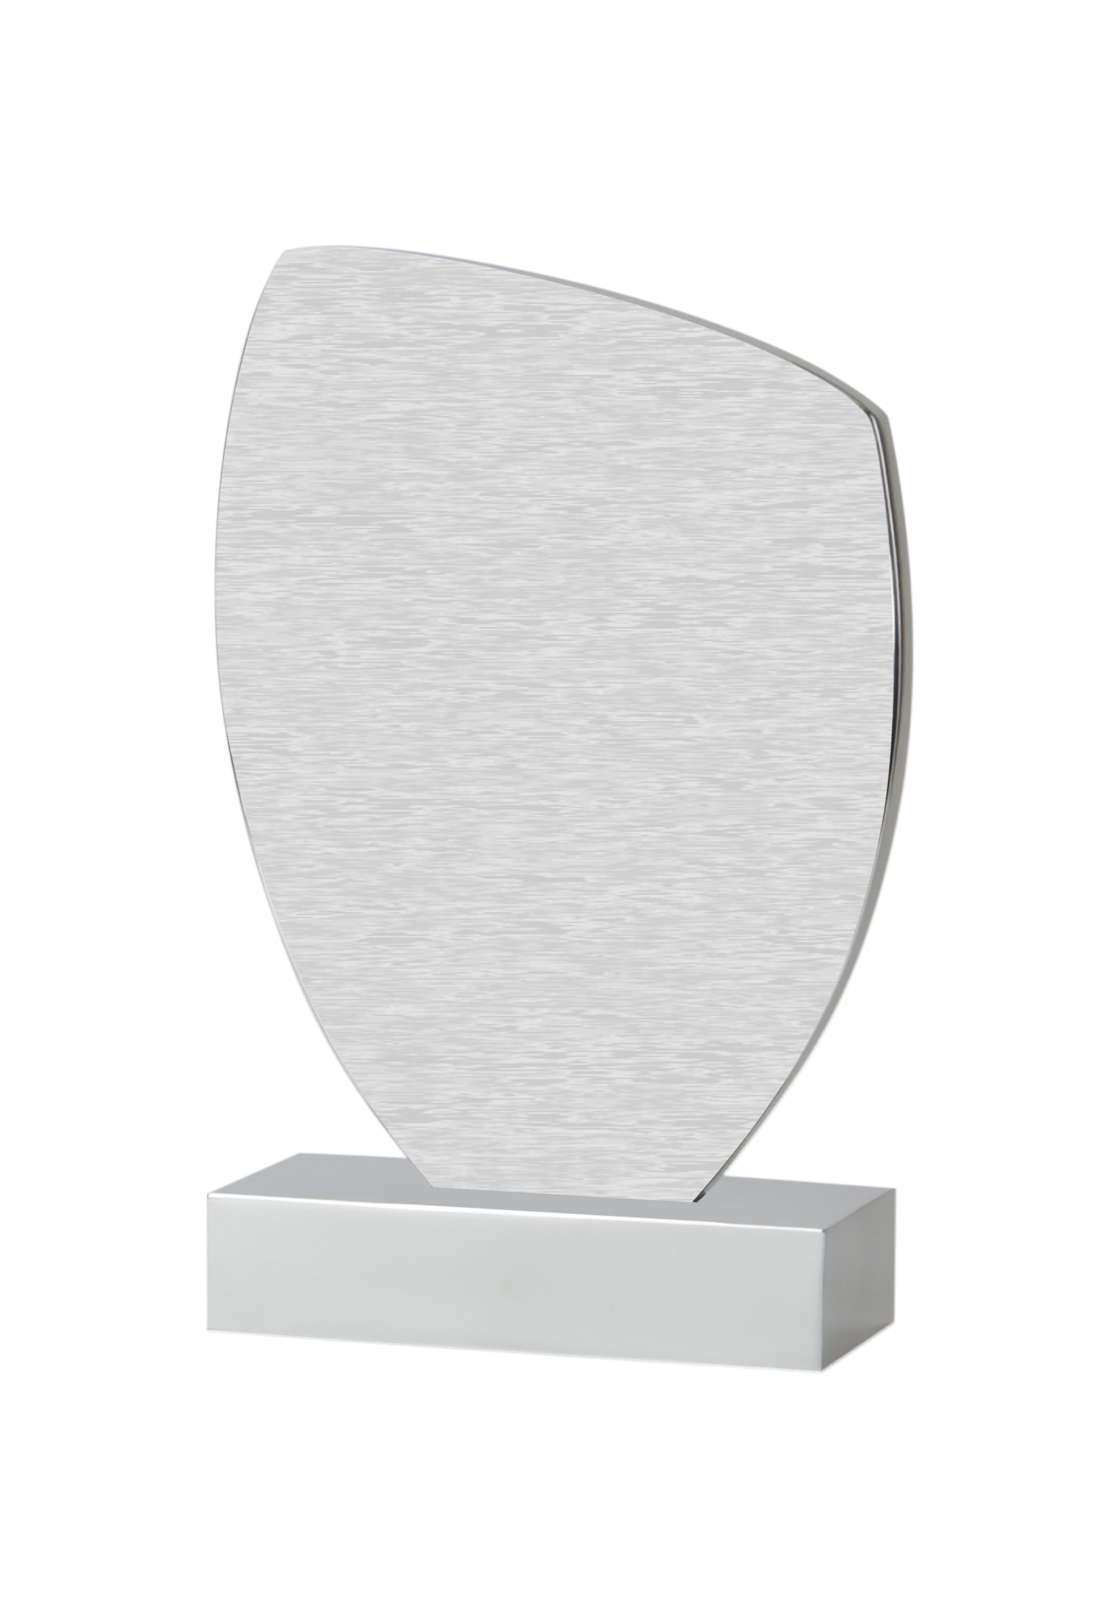 Satin Aluminium Shield Award